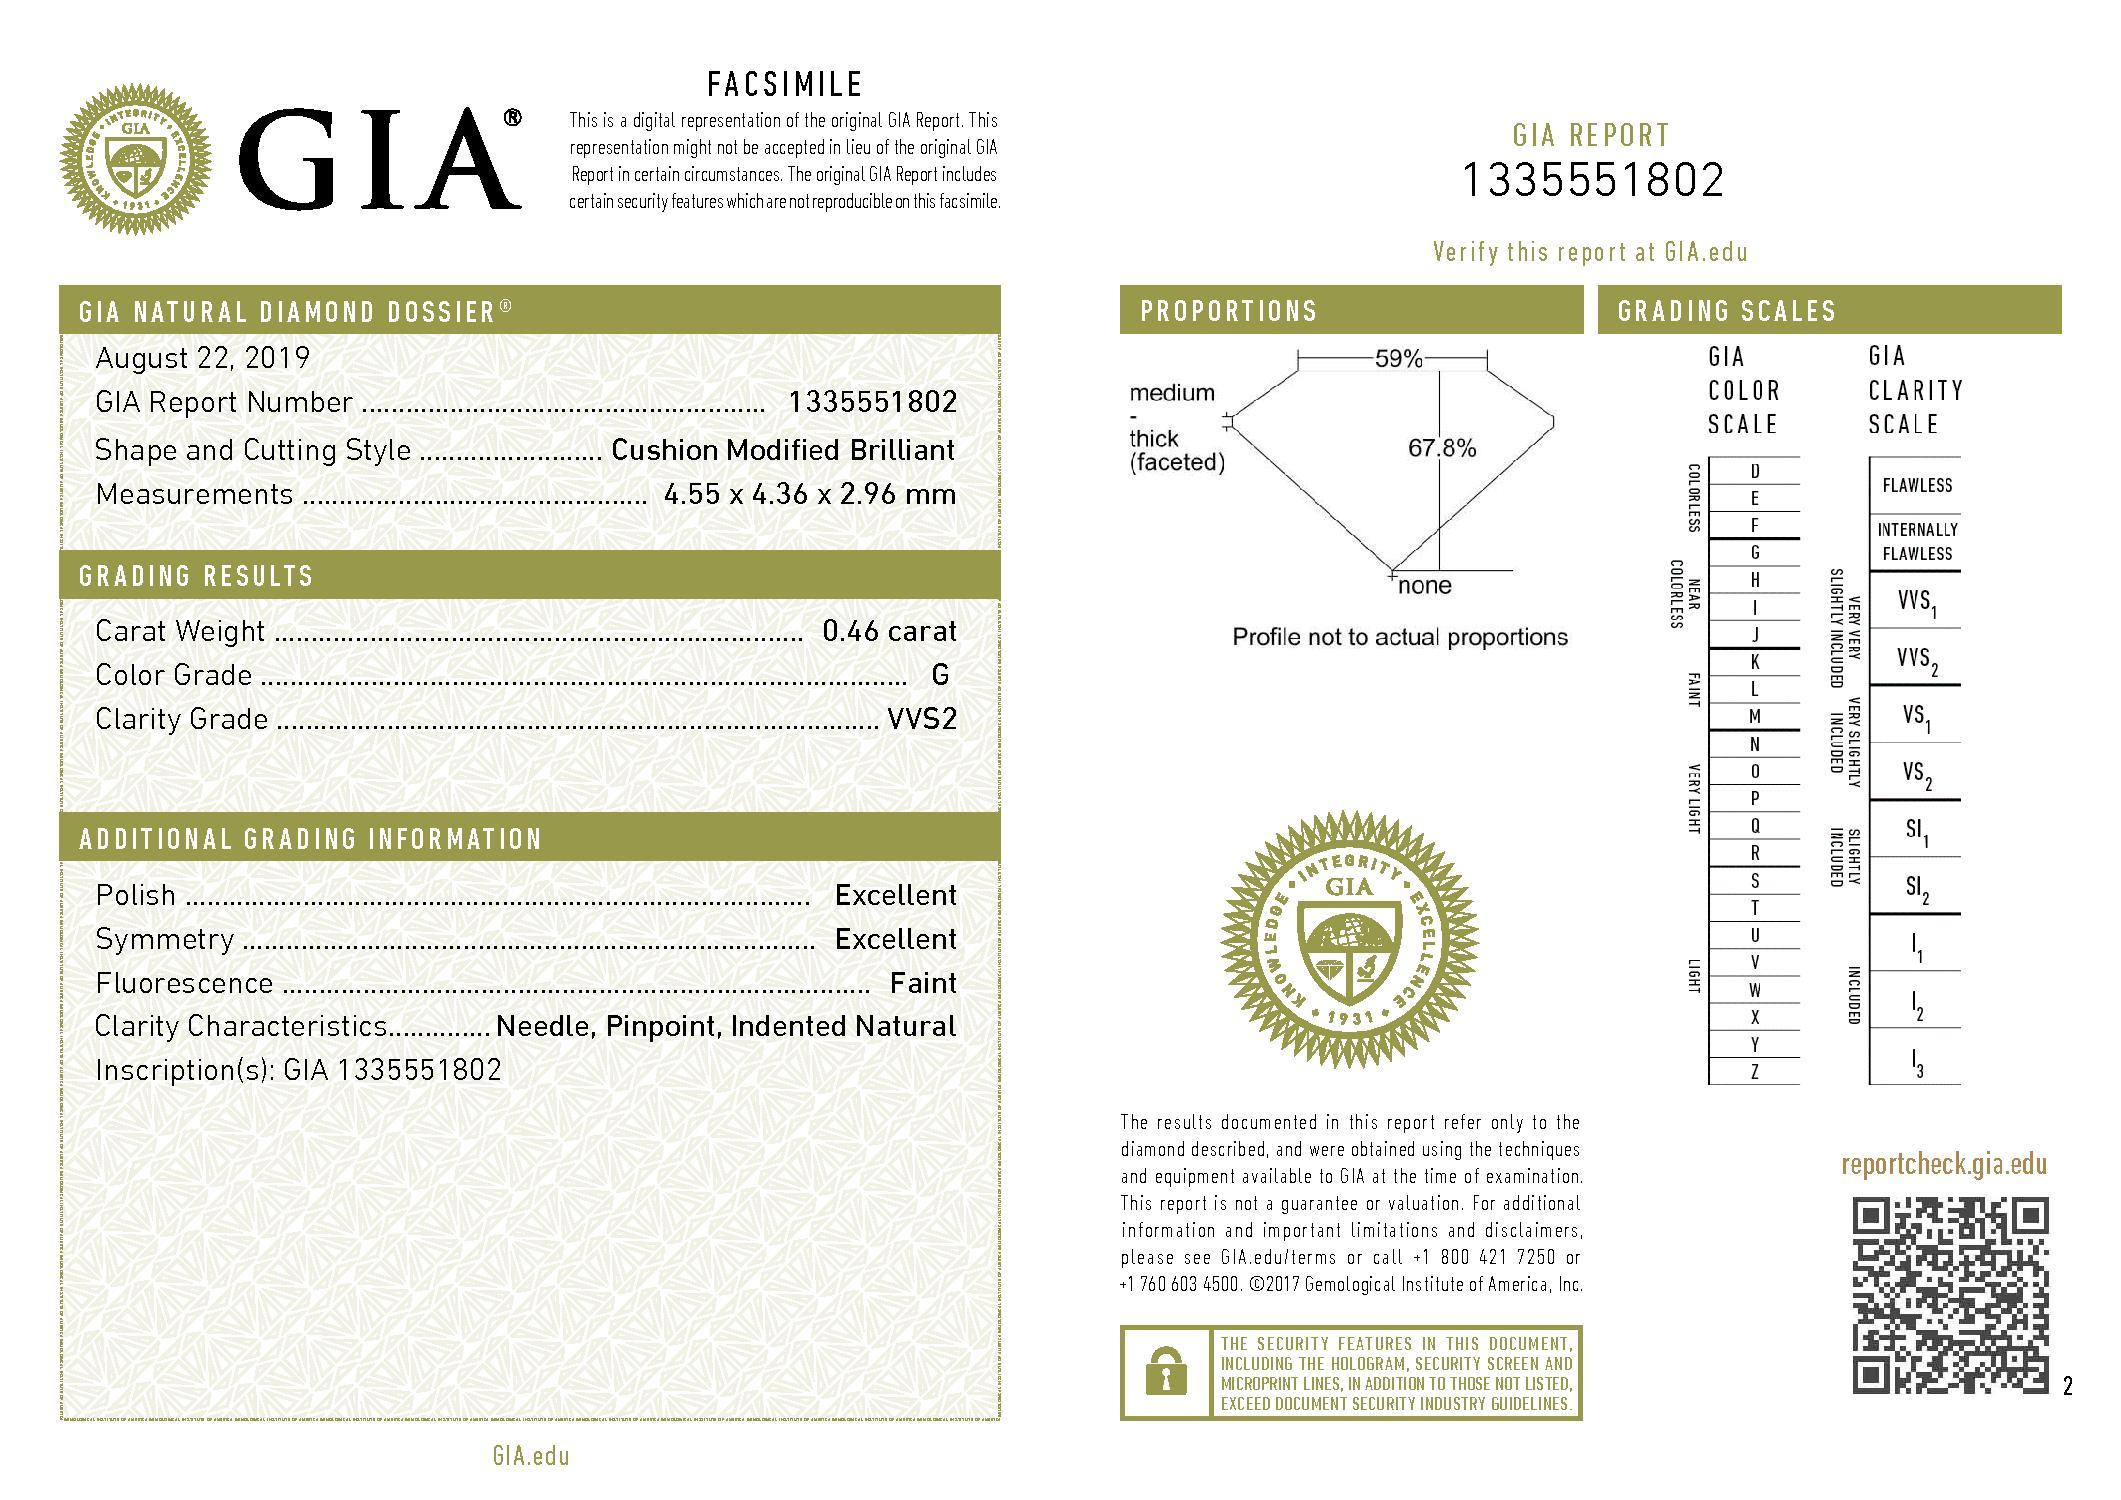 This is a 0.46 carat cushion shape, G color, VVS2 clarity natural diamond accompanied by a GIA grading report.